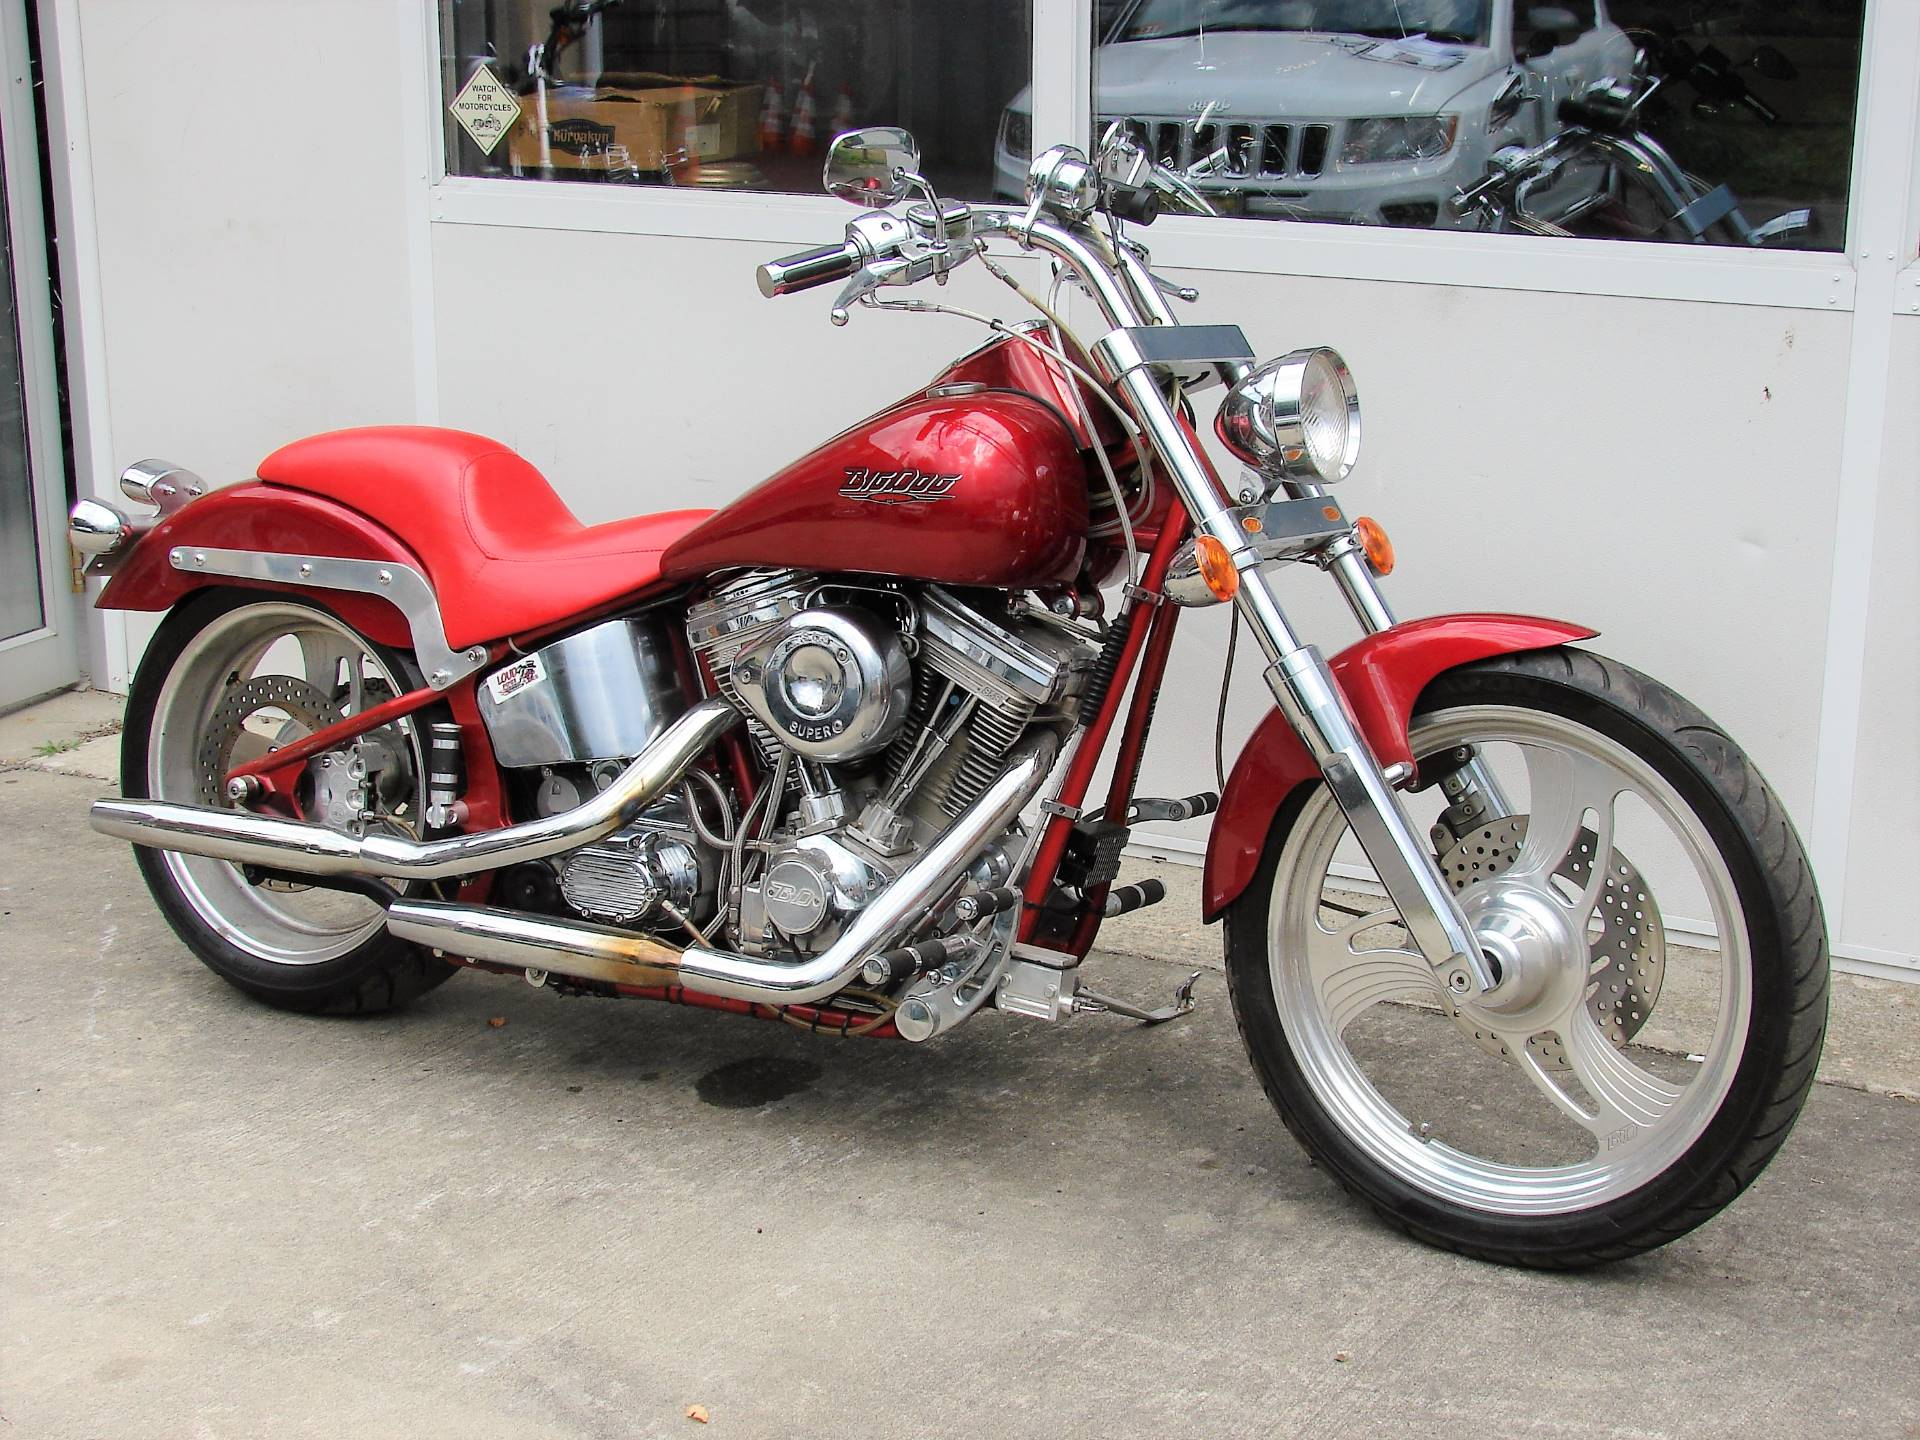 2002 Big Dog Motorcycles Mastiff  -  (Red) in Williamstown, New Jersey